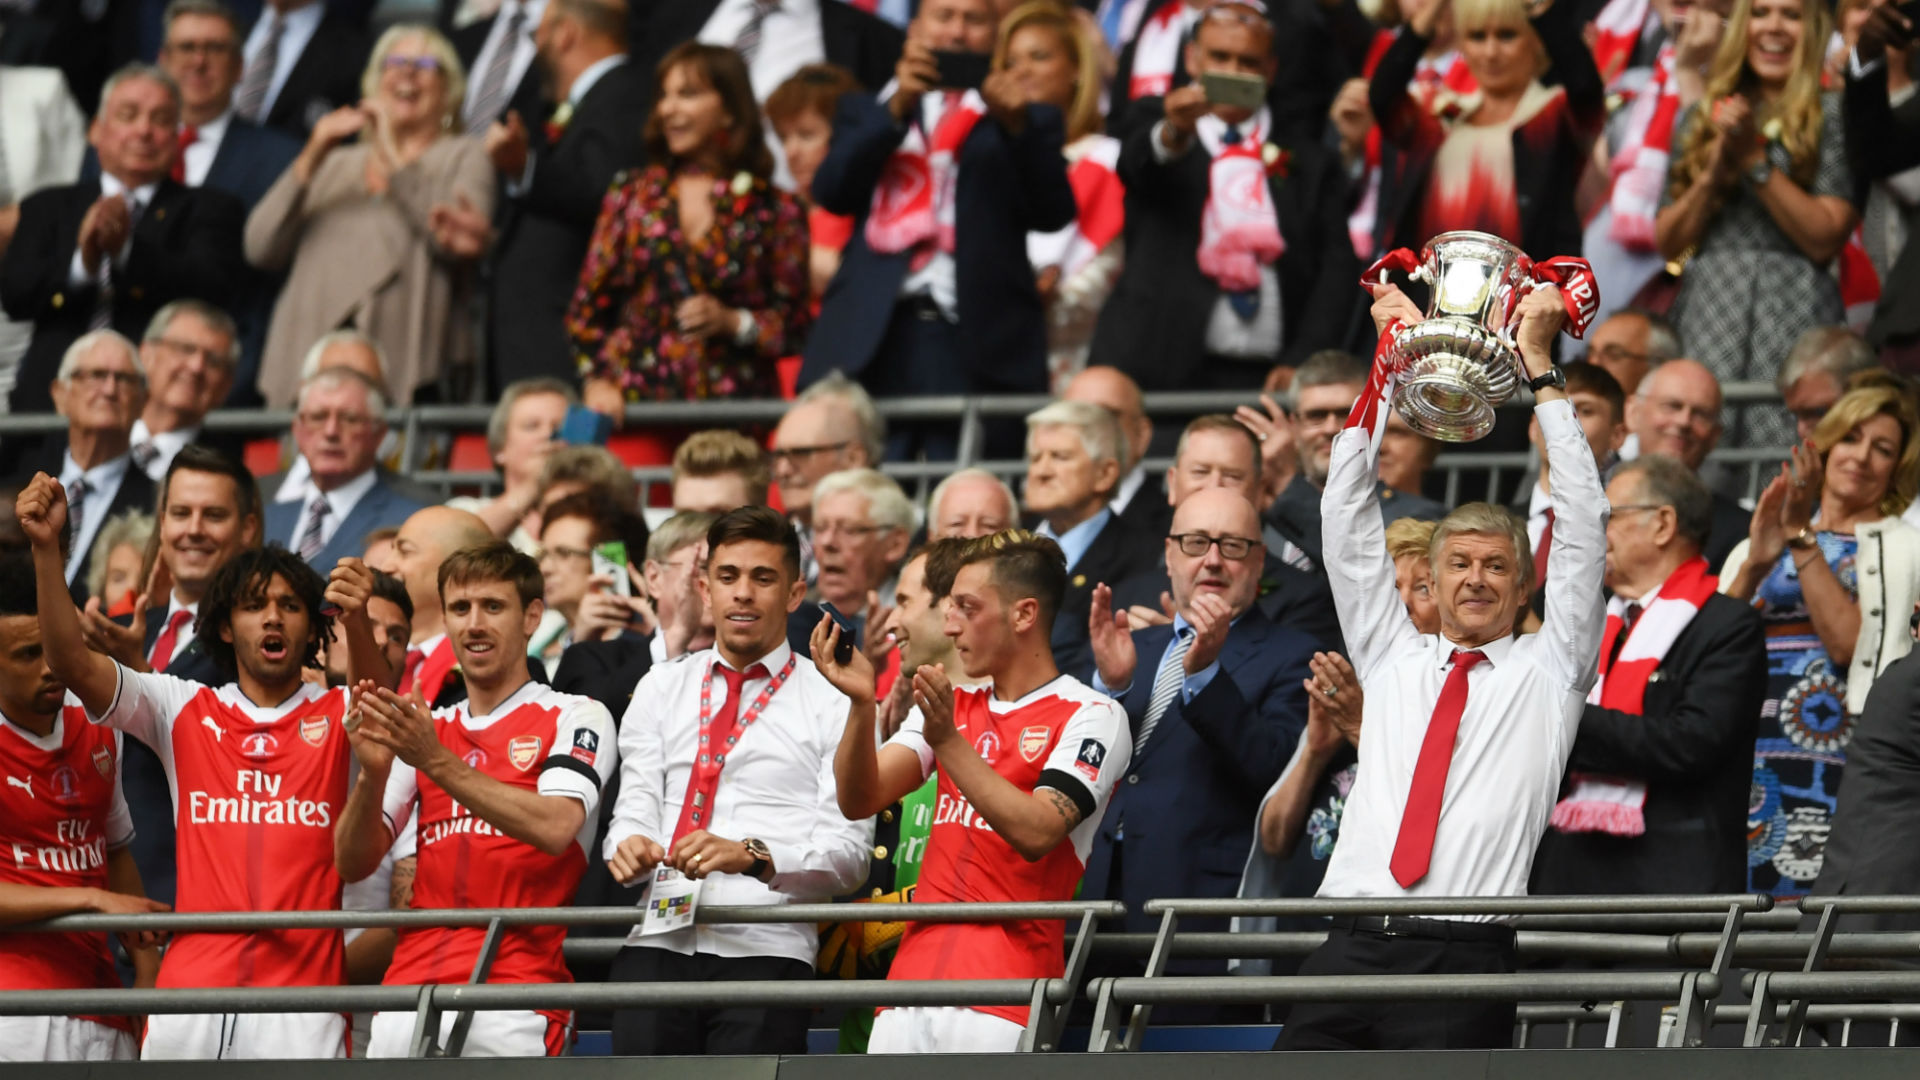 Arsenal beat Chelsea 2-1 to win FA Cup